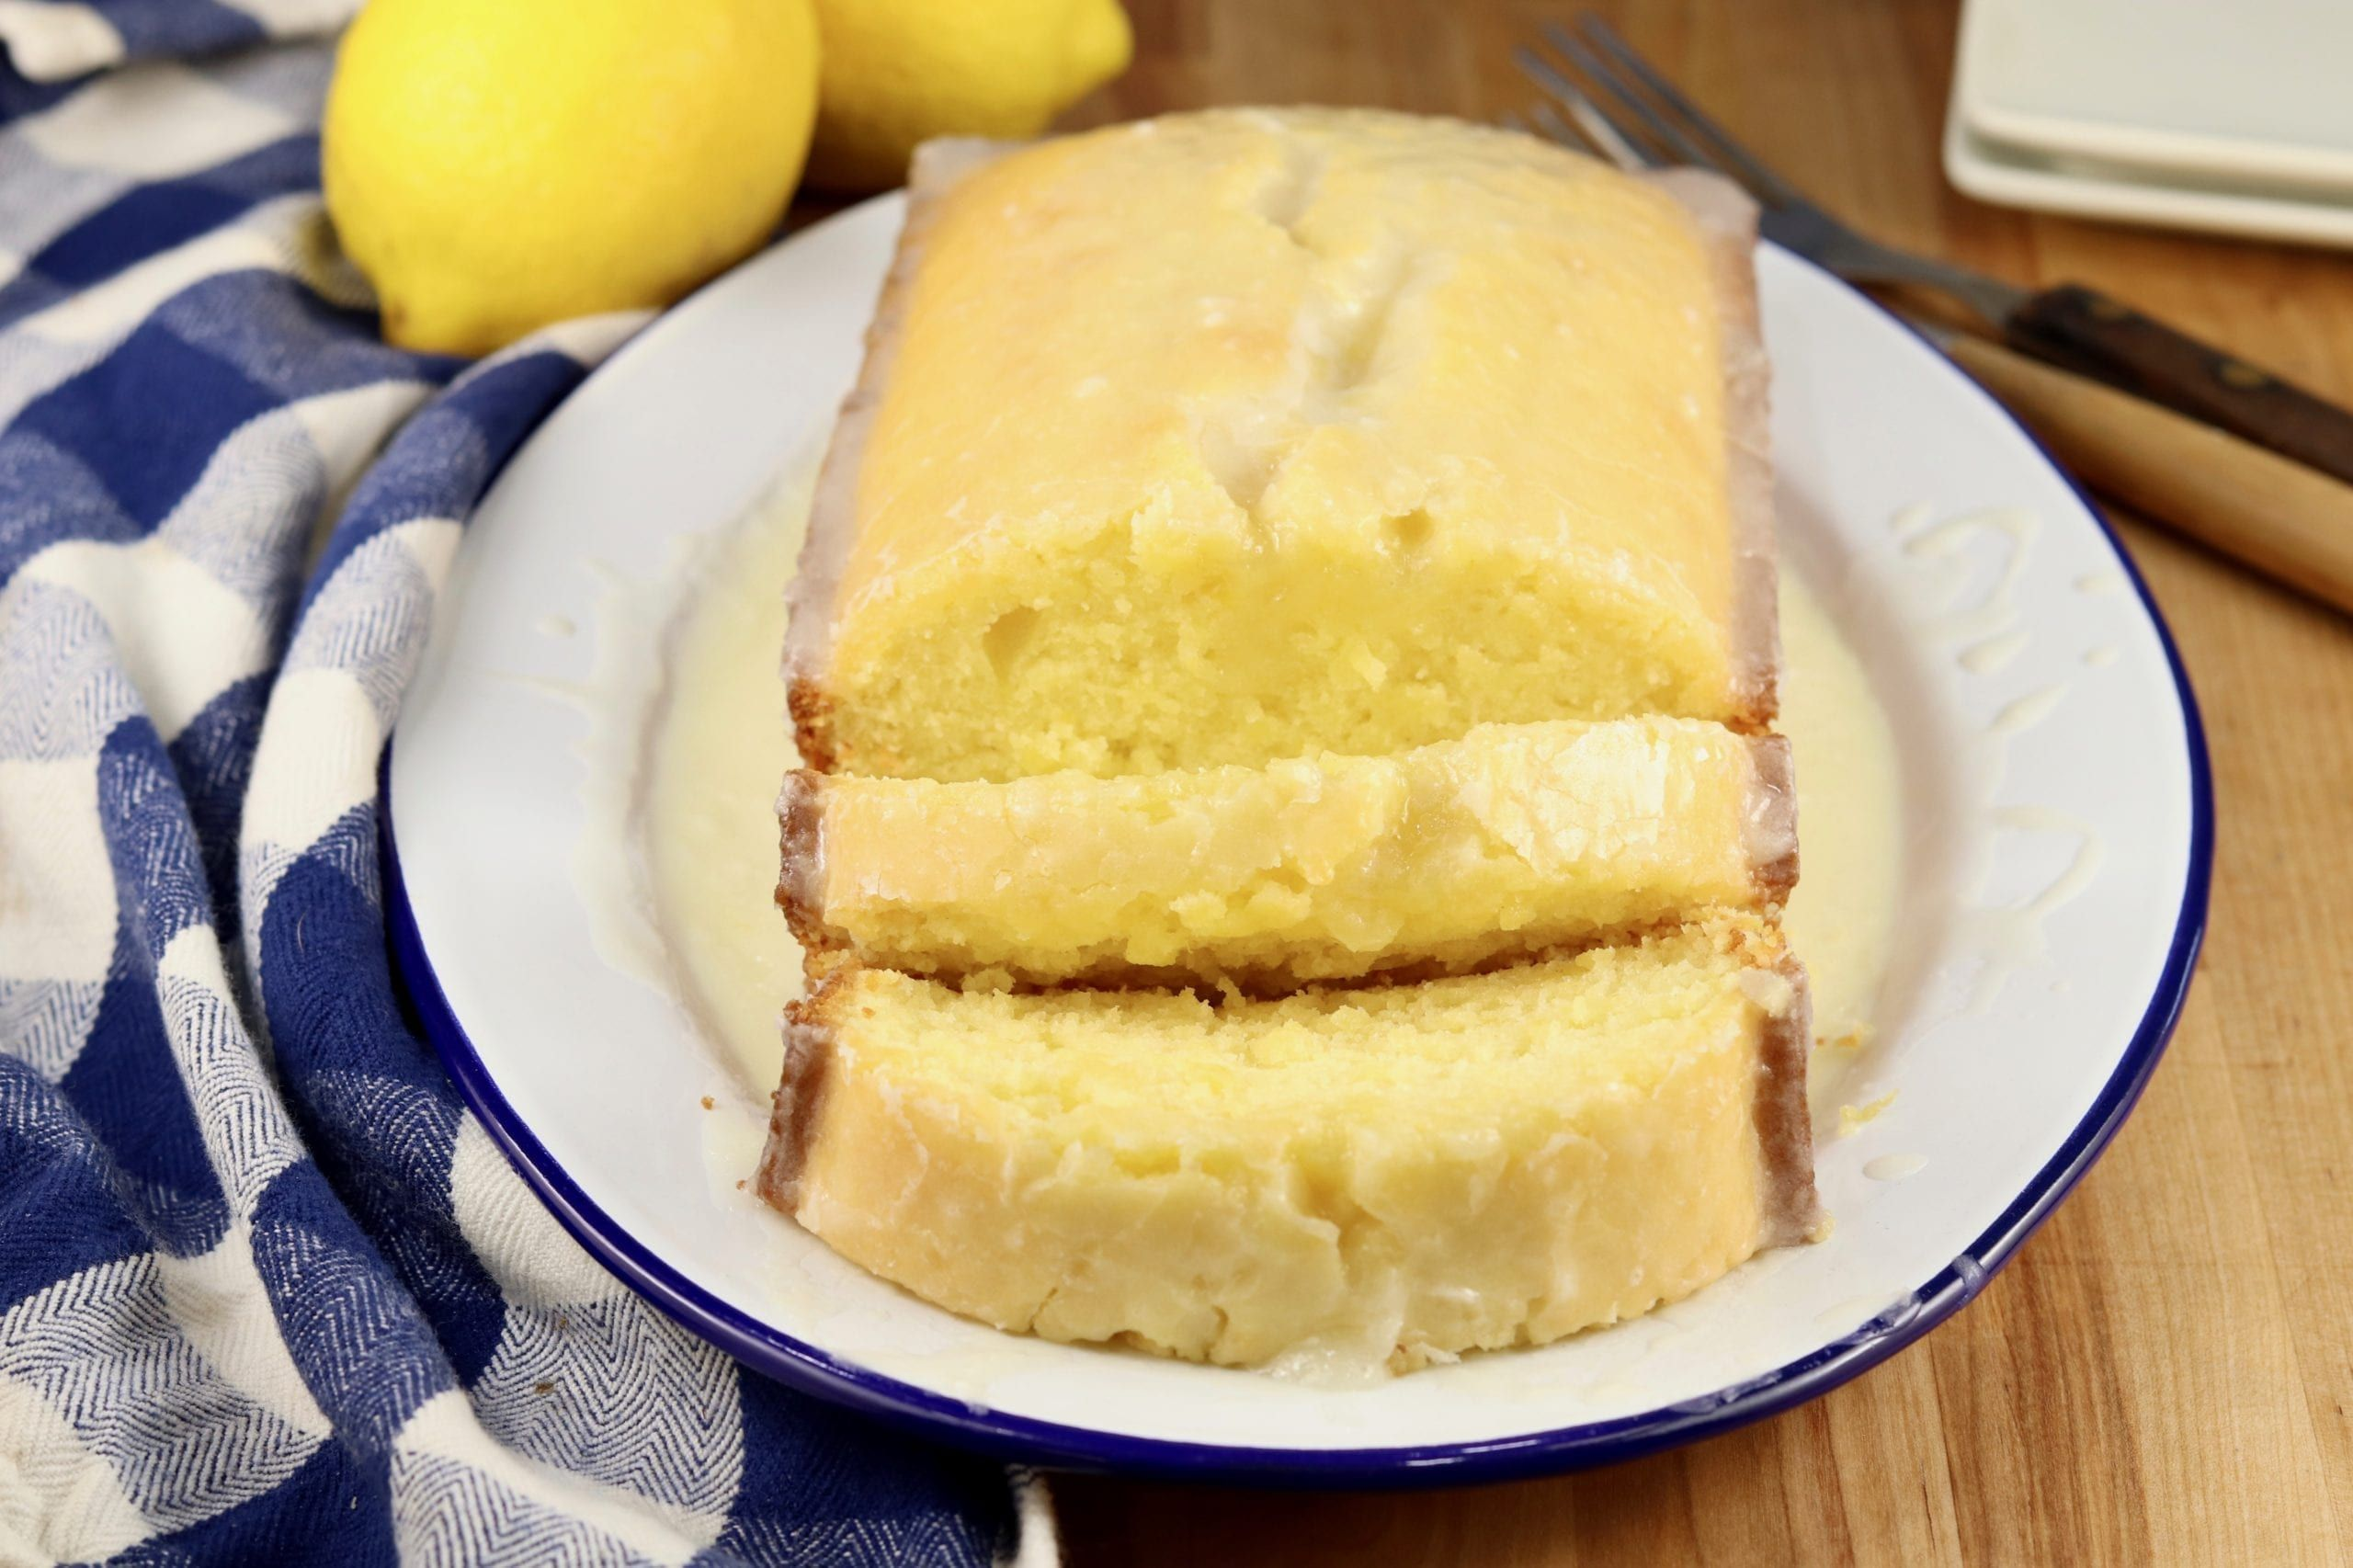 Lemon Pound Cake With Buttermilk Lemon Glaze Miss In The Kitchen In 2020 Pound Cake Lemon Pound Cake Pound Cake Recipes